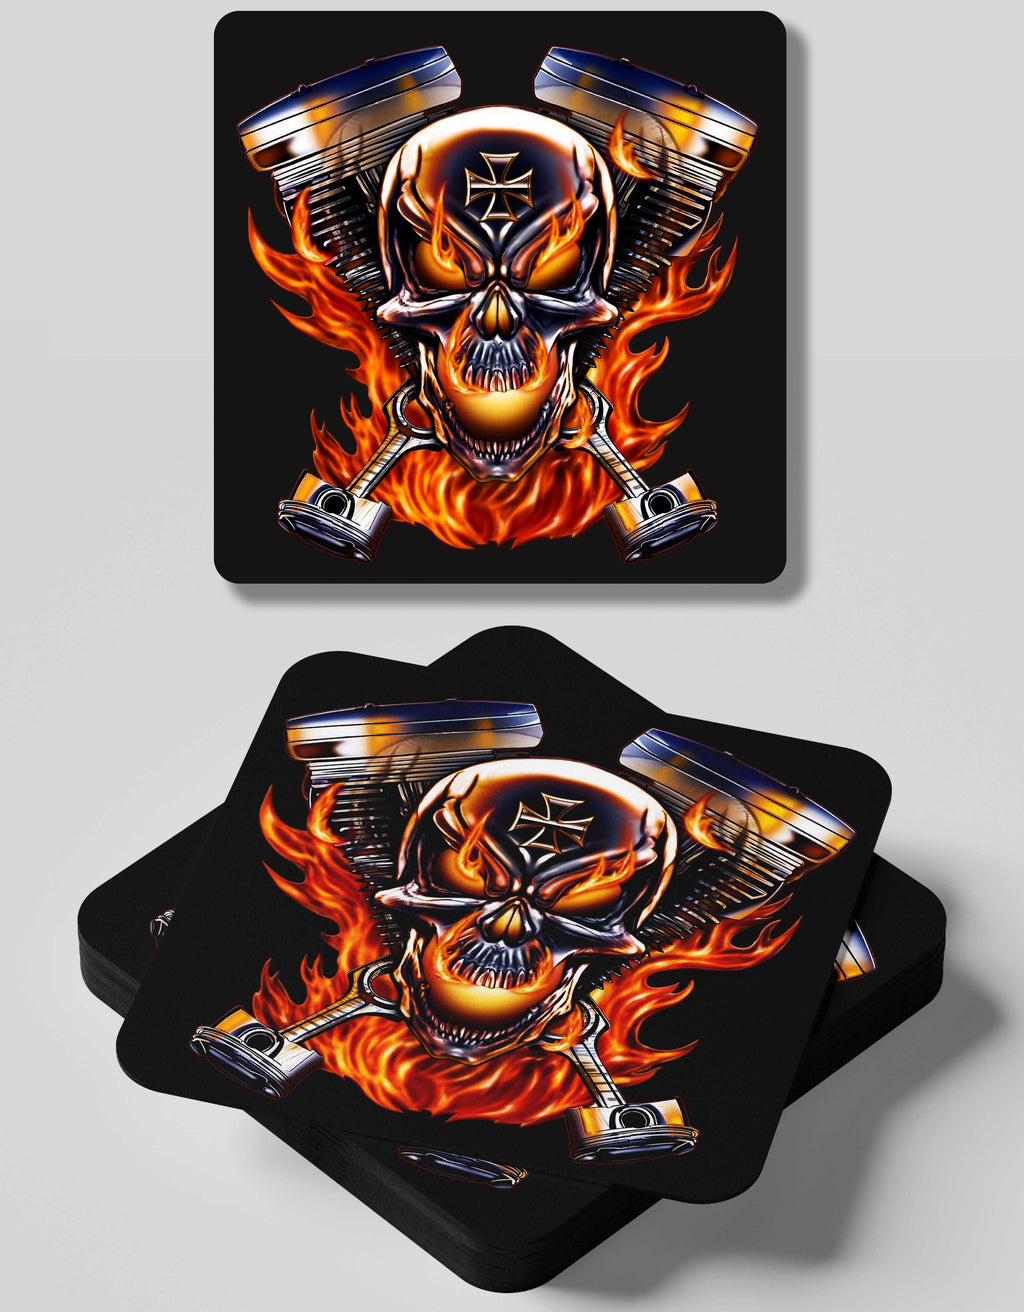 V-Twin Engine-4  Coasters Set